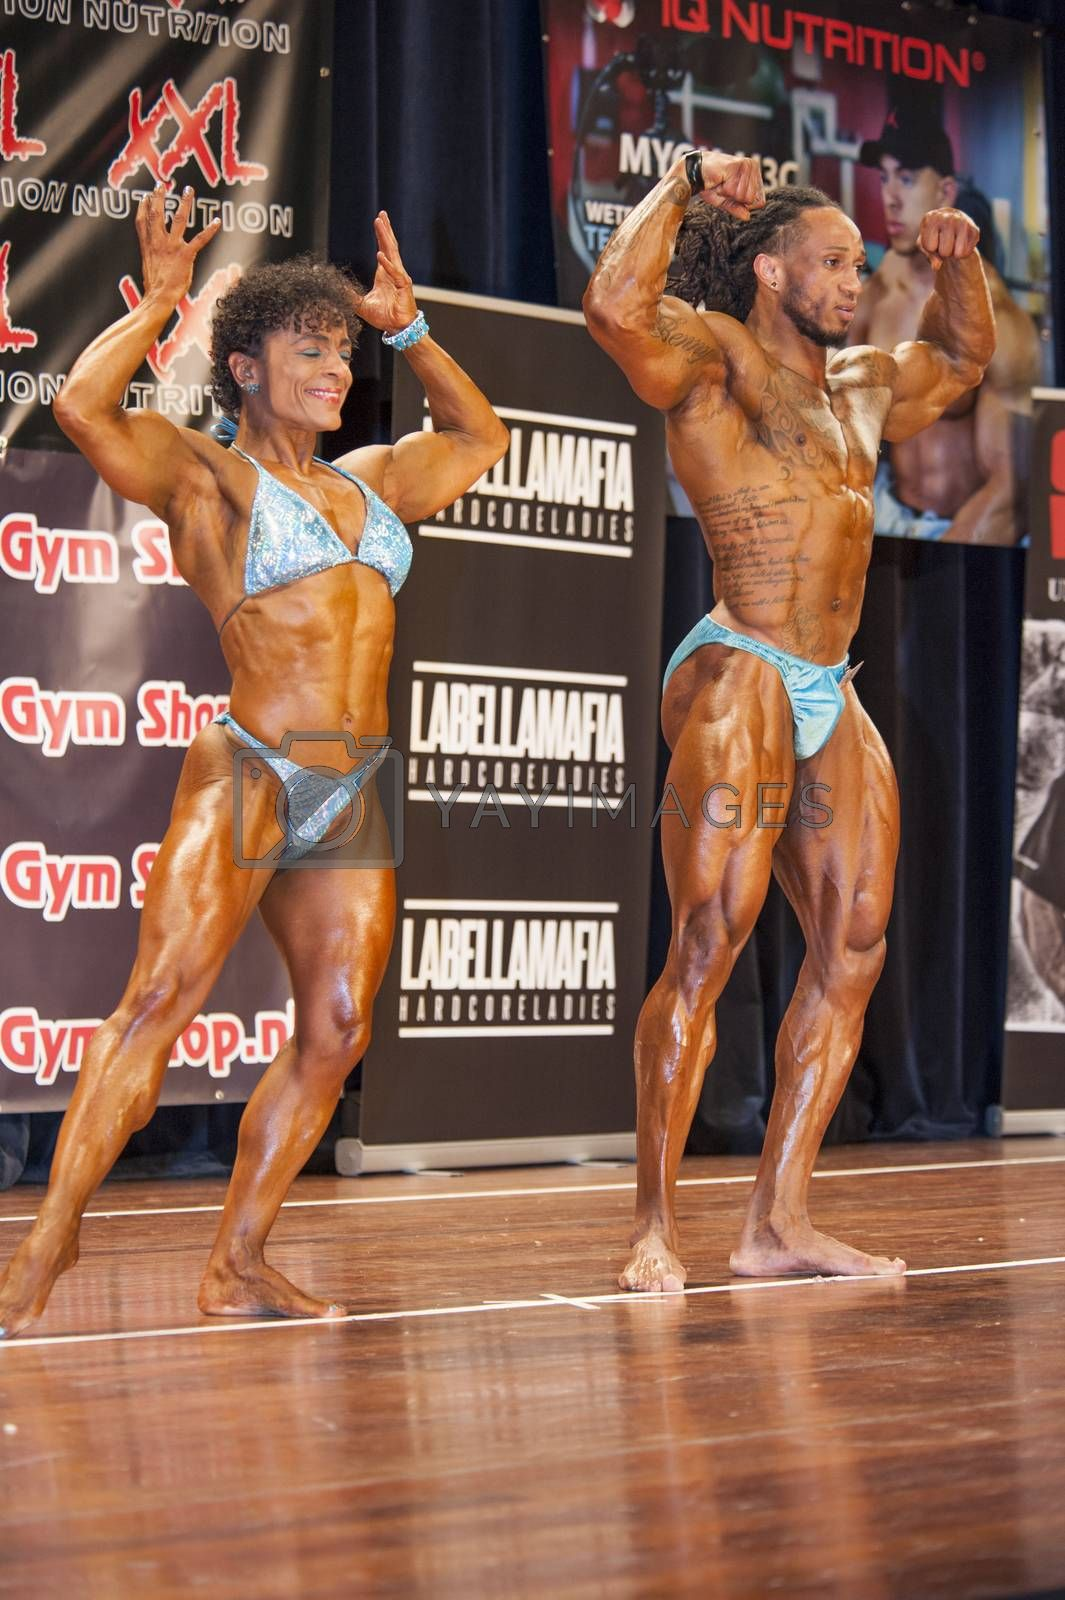 bodybuilding duo in front double biceps pose on stage by yellowpaul